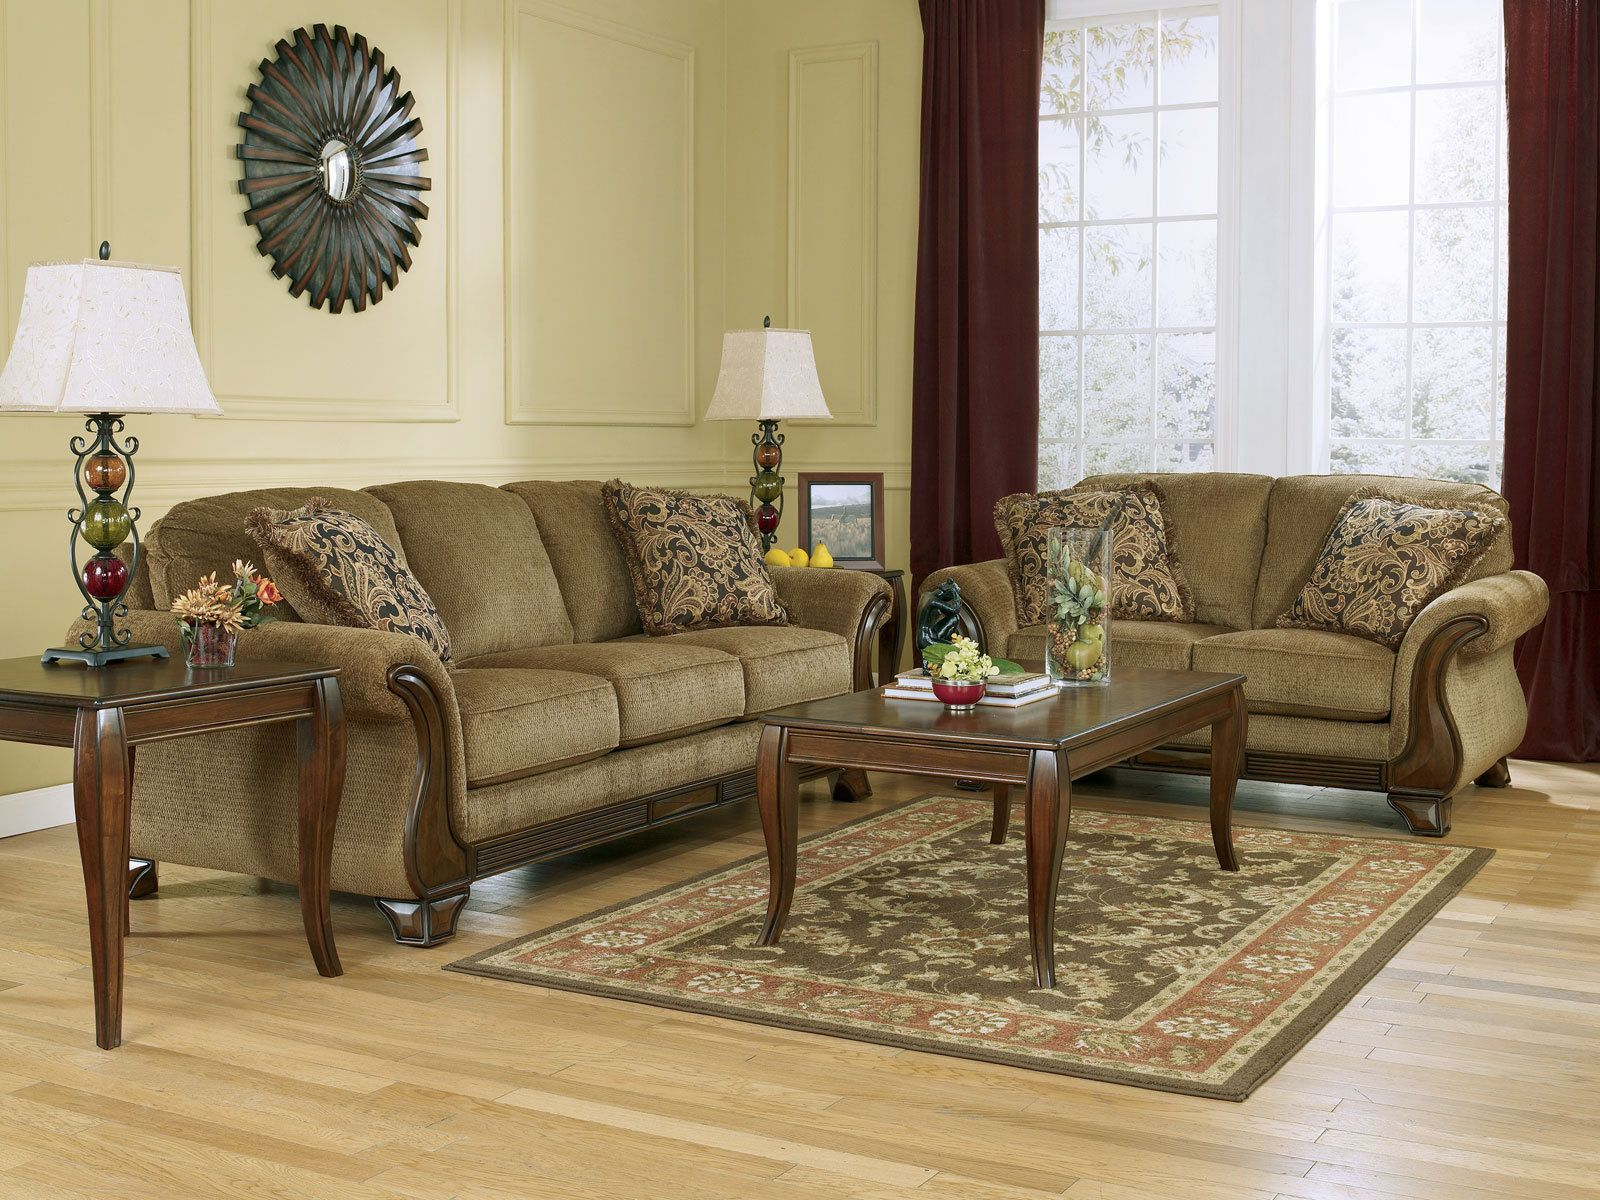 Sofa Set For Sale Ebay Santiago Traditional Brown Fabric Wood Trim Sofa Couch Set